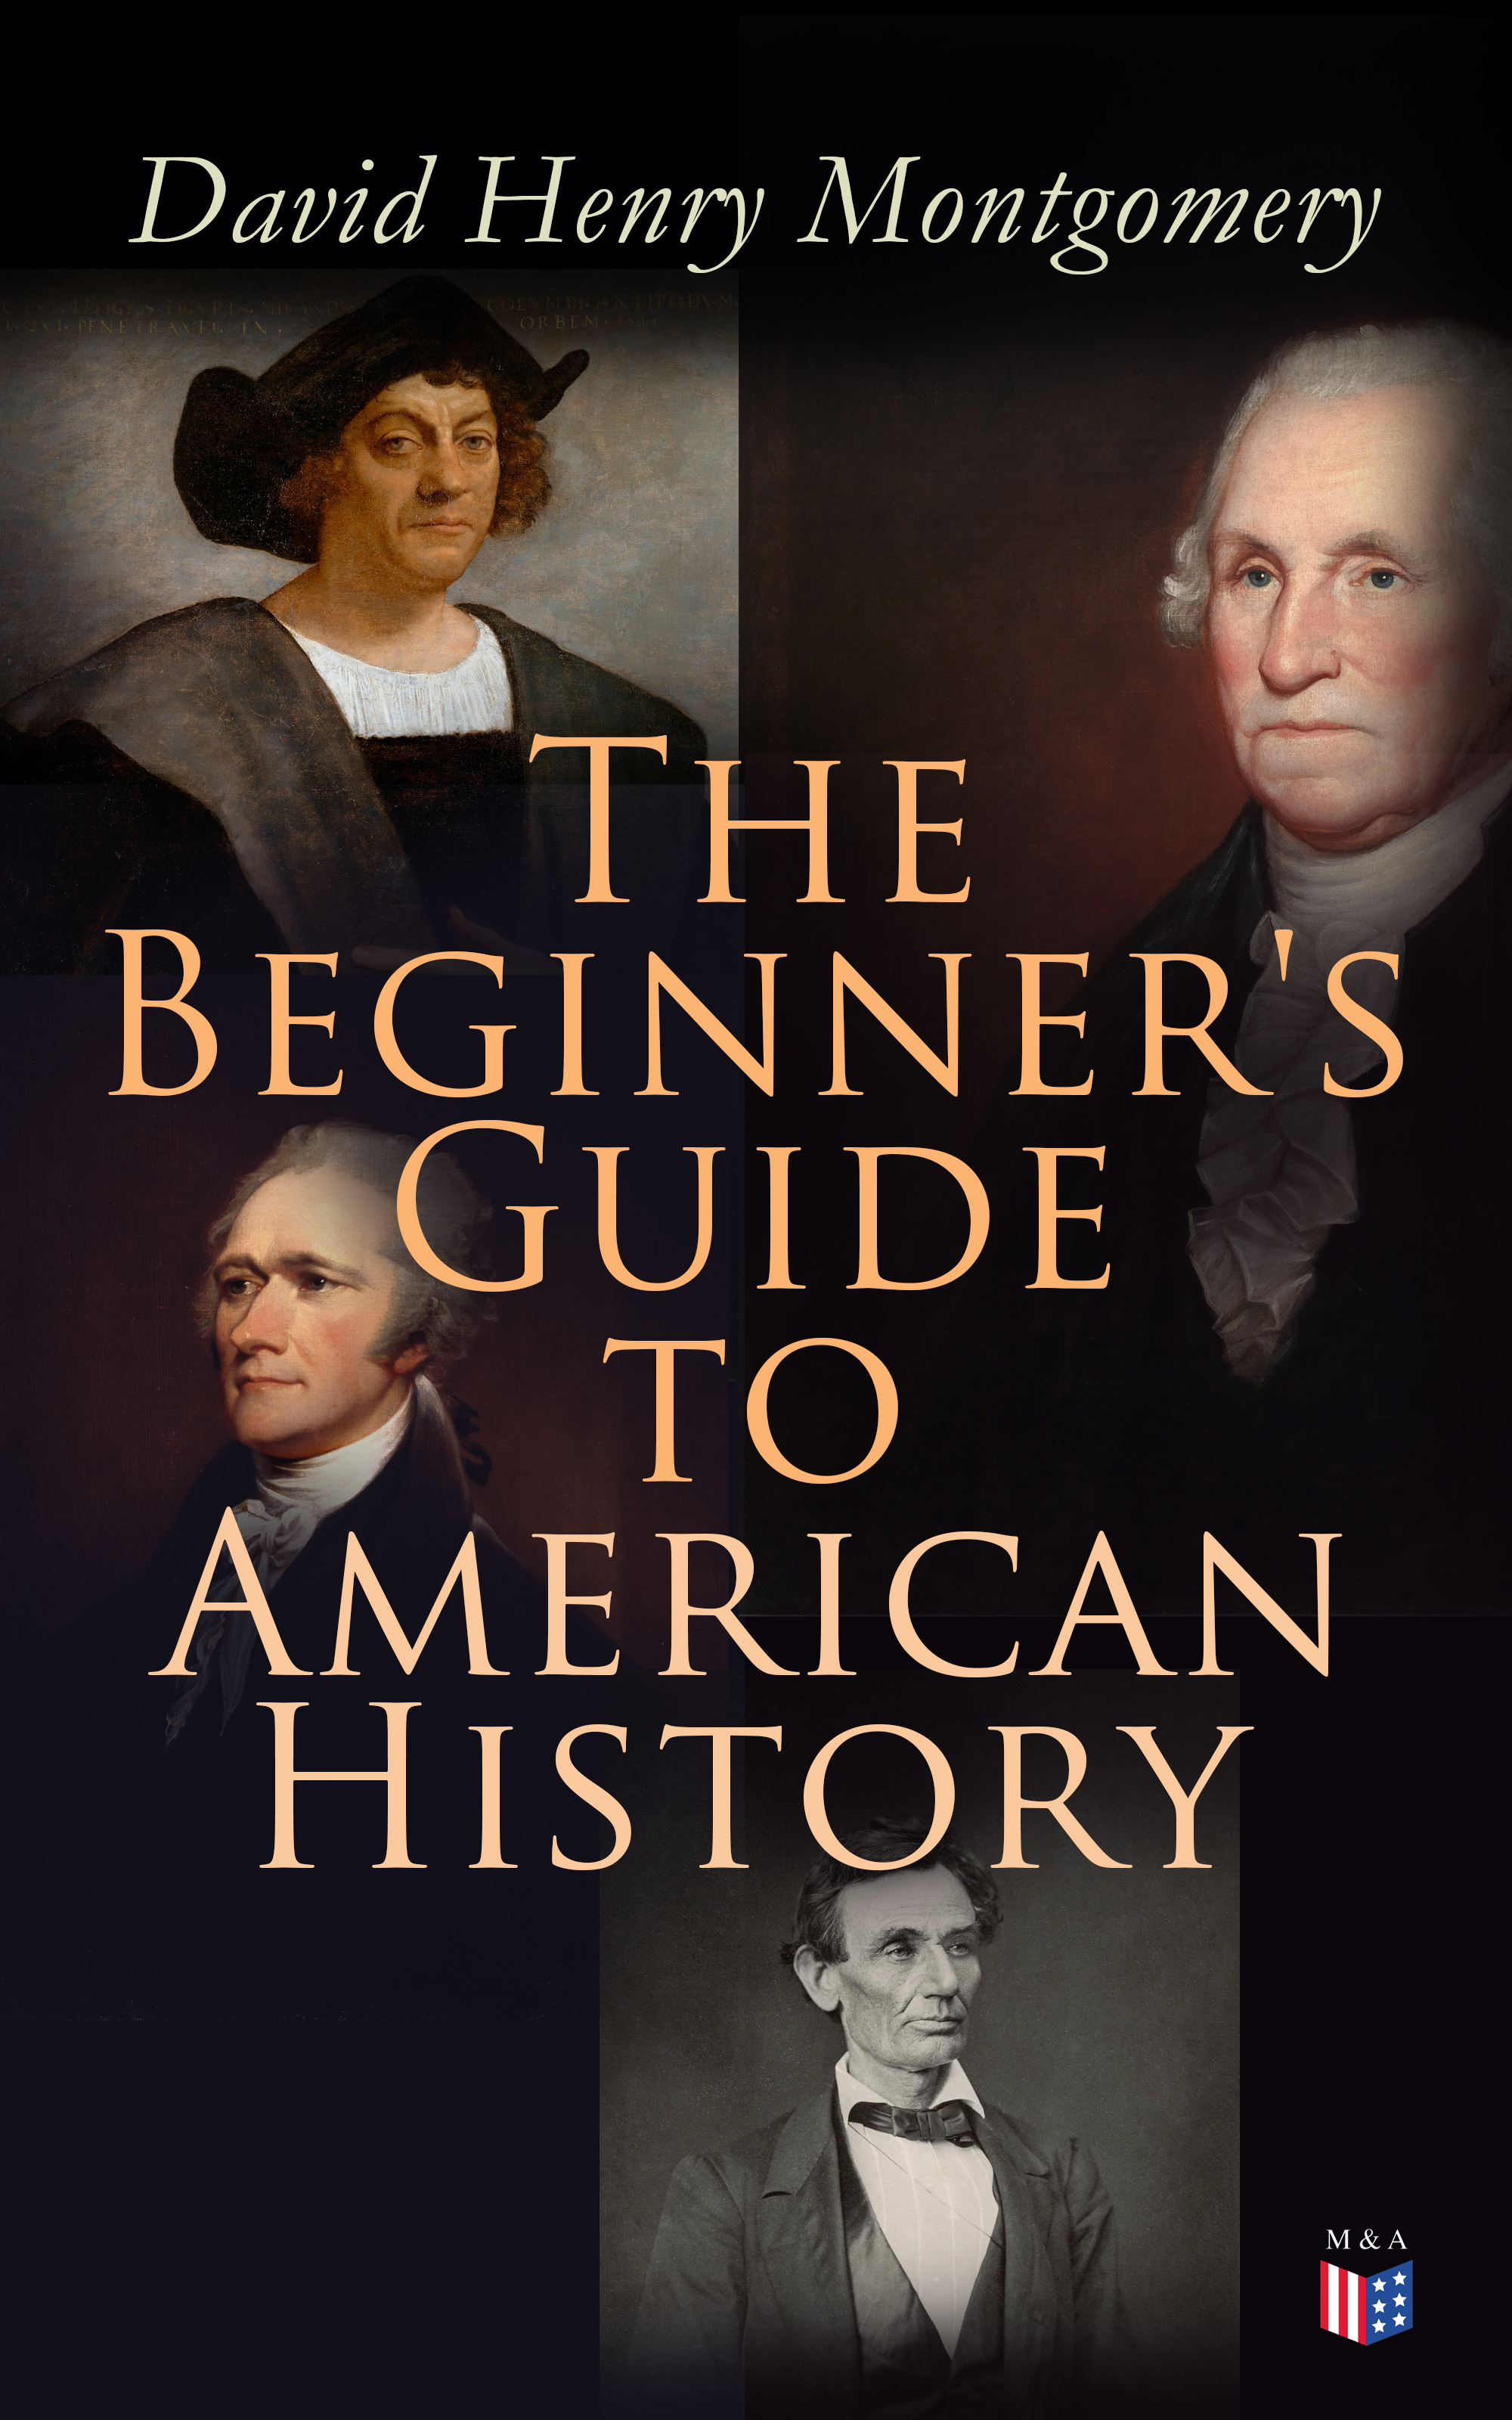 David Henry Montgomery The Beginner's Guide to American History henry david thoreau the selected essays of henry david thoreau